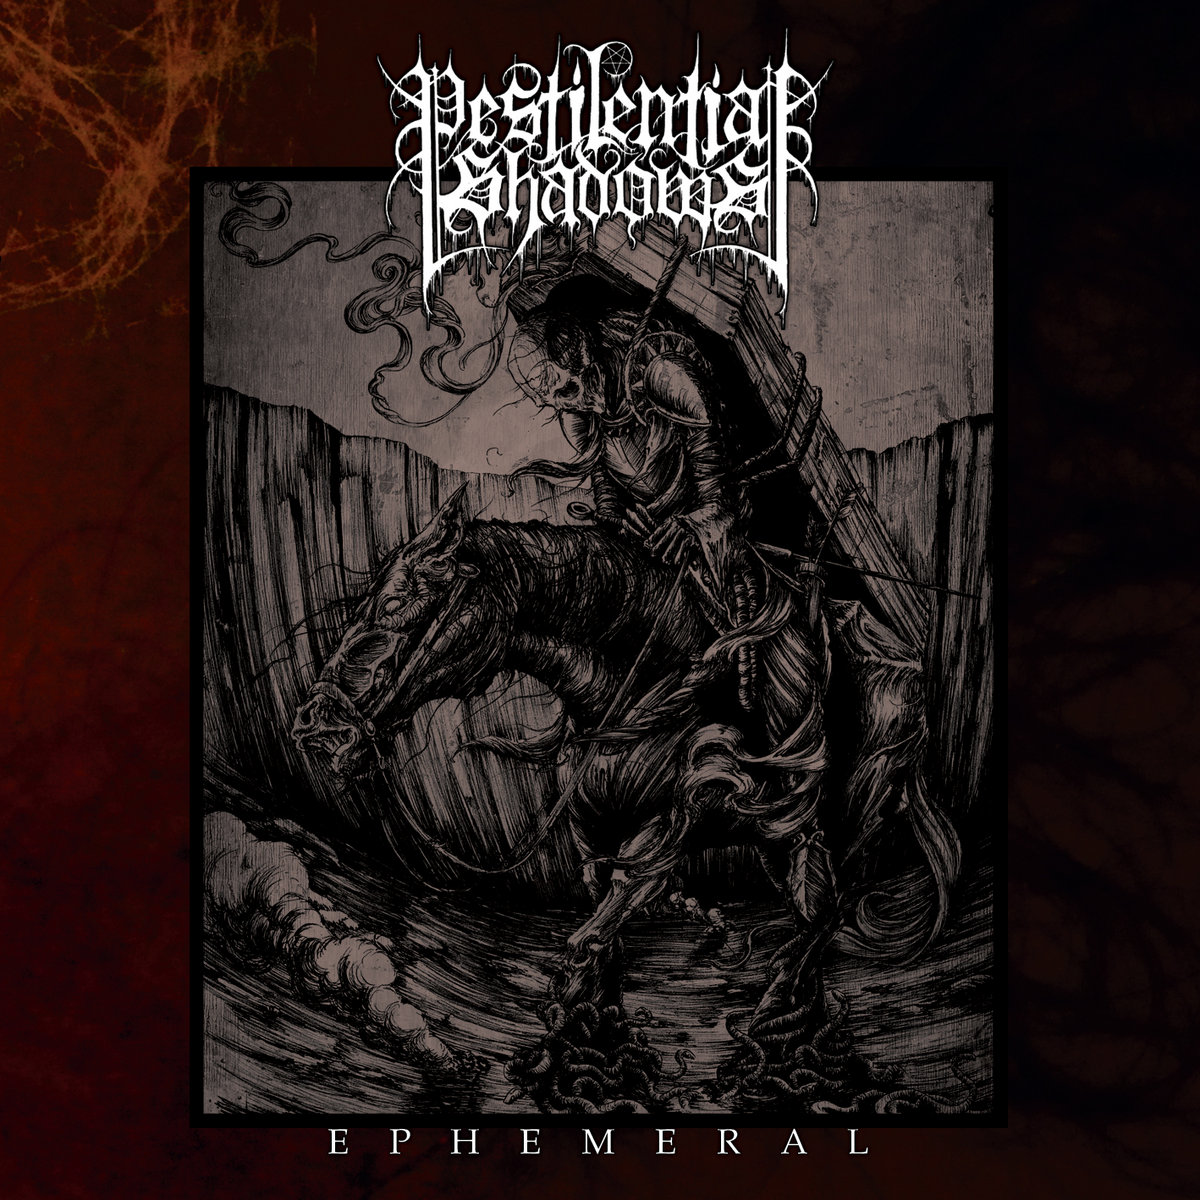 Pestilential Shadows - Ephemeral (2014)